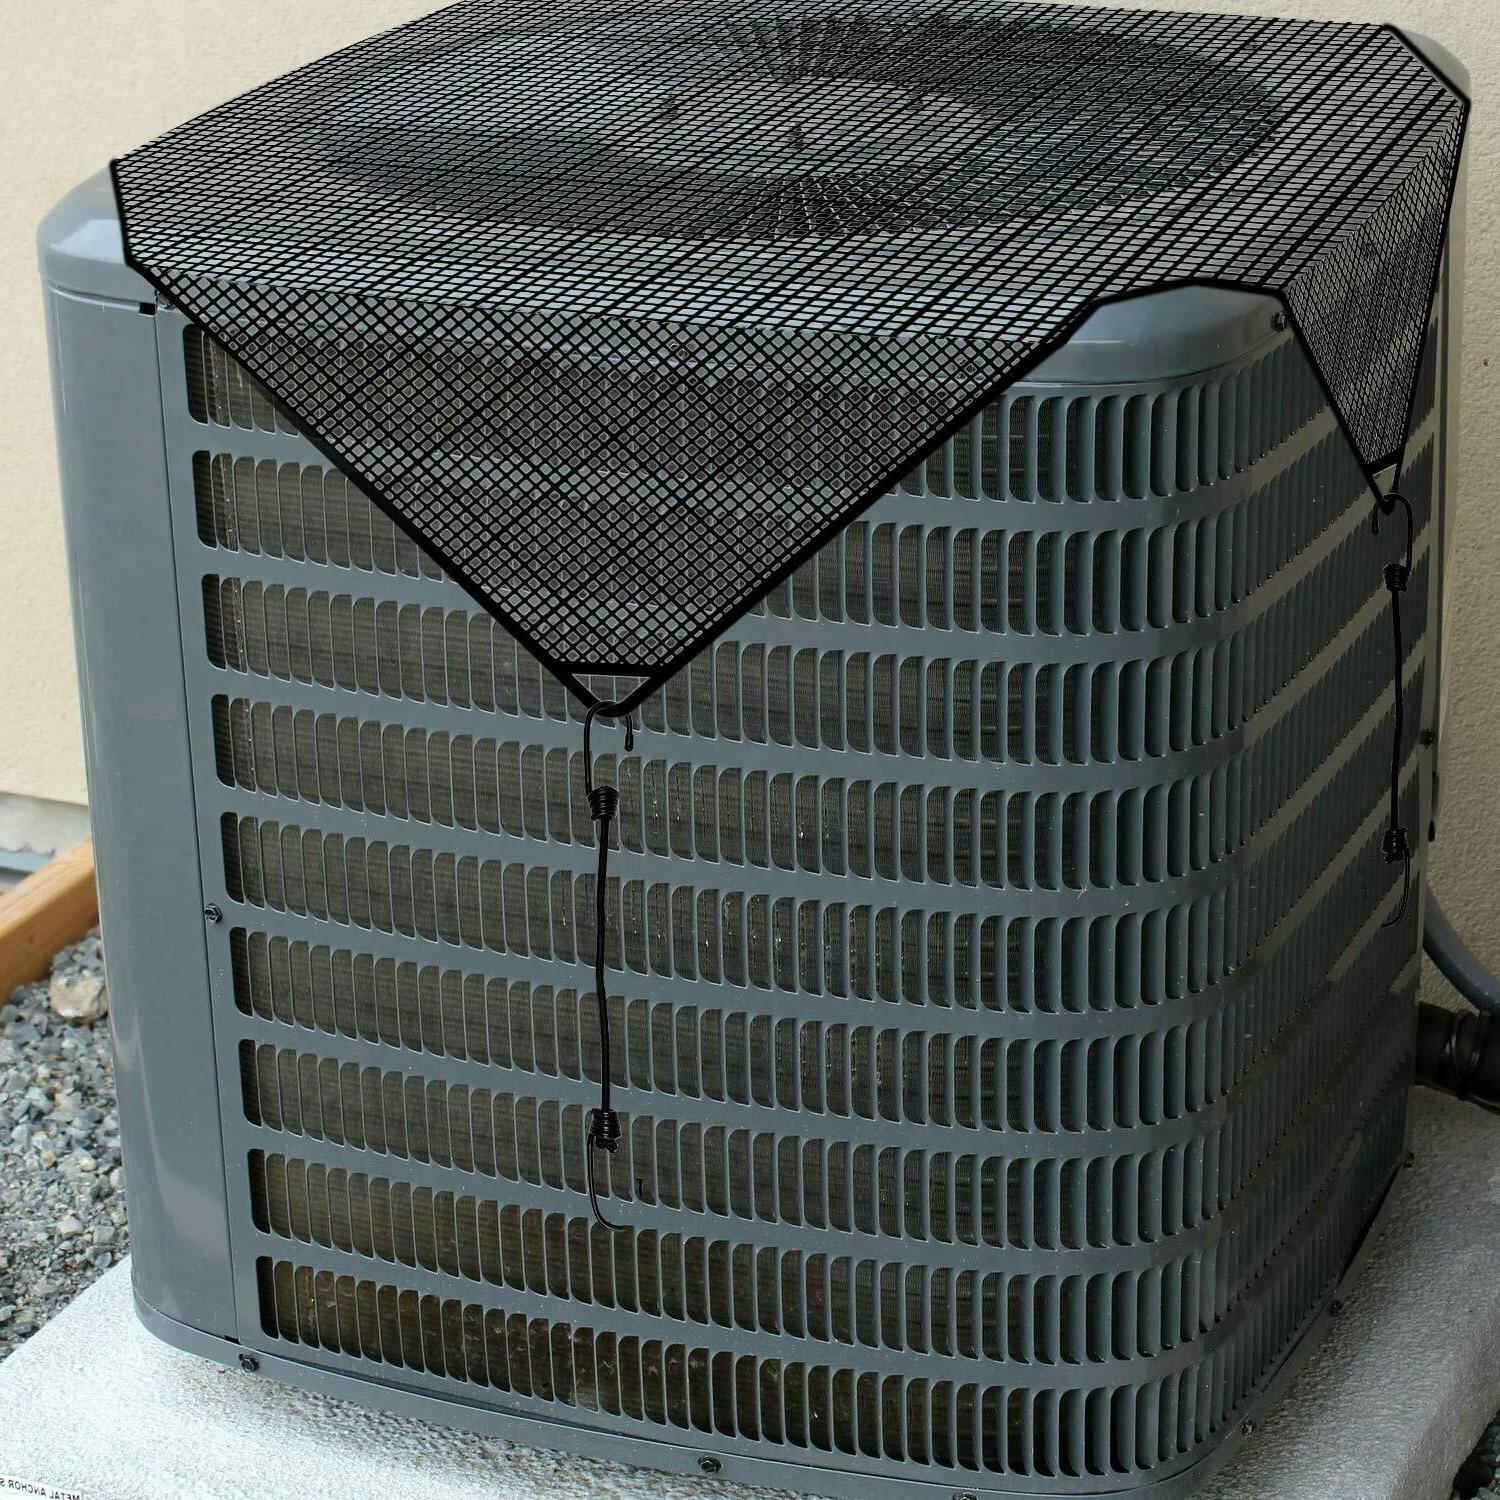 Summer Net Mesh Air Conditioner Mesh Cover for Outside Units